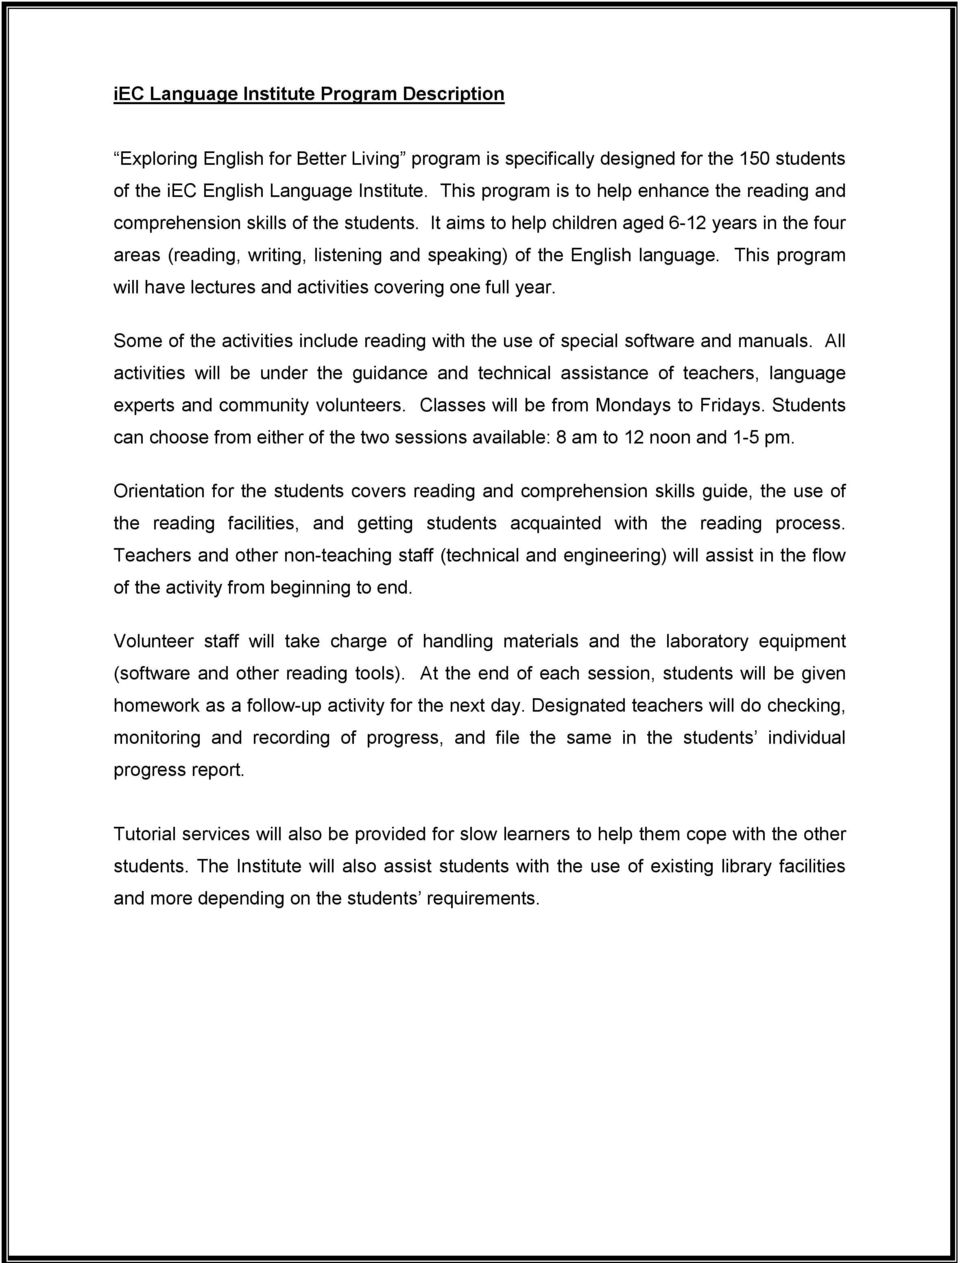 It aims to help children aged 6 12 years in the four areas (reading, writing, listening and speaking) of the English language. This program will have lectures and activities covering one full year.